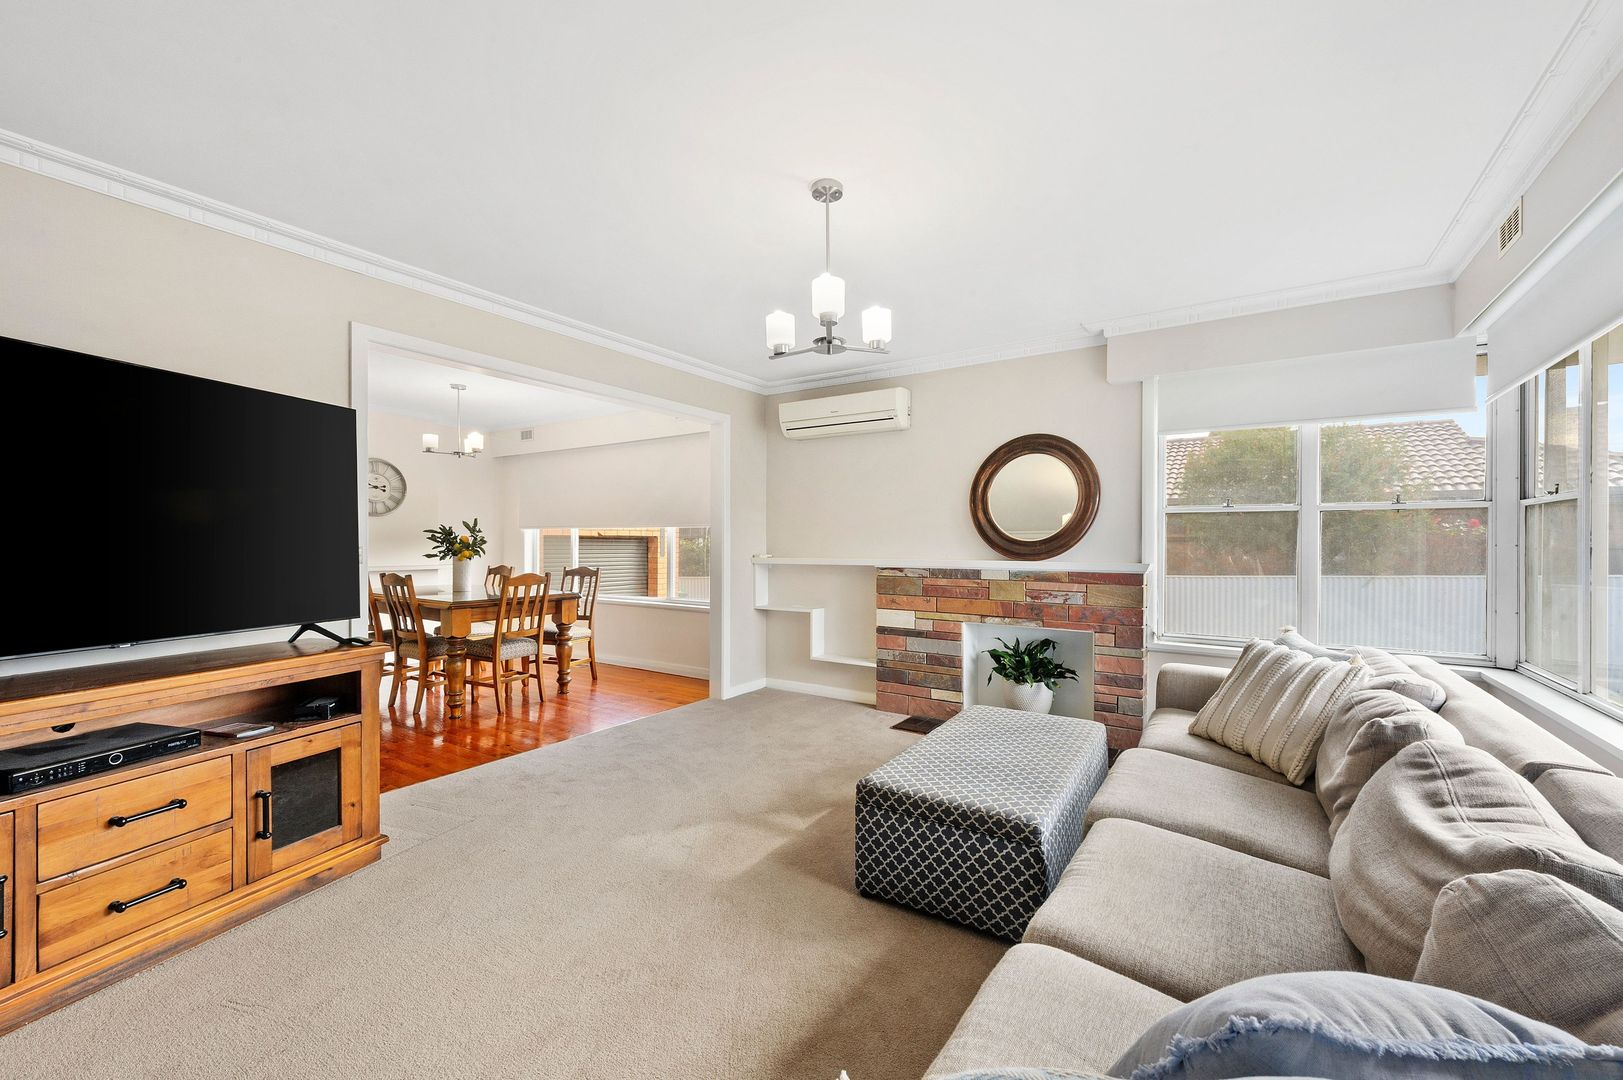 1 Woods Street, Colac VIC 3250, Image 2